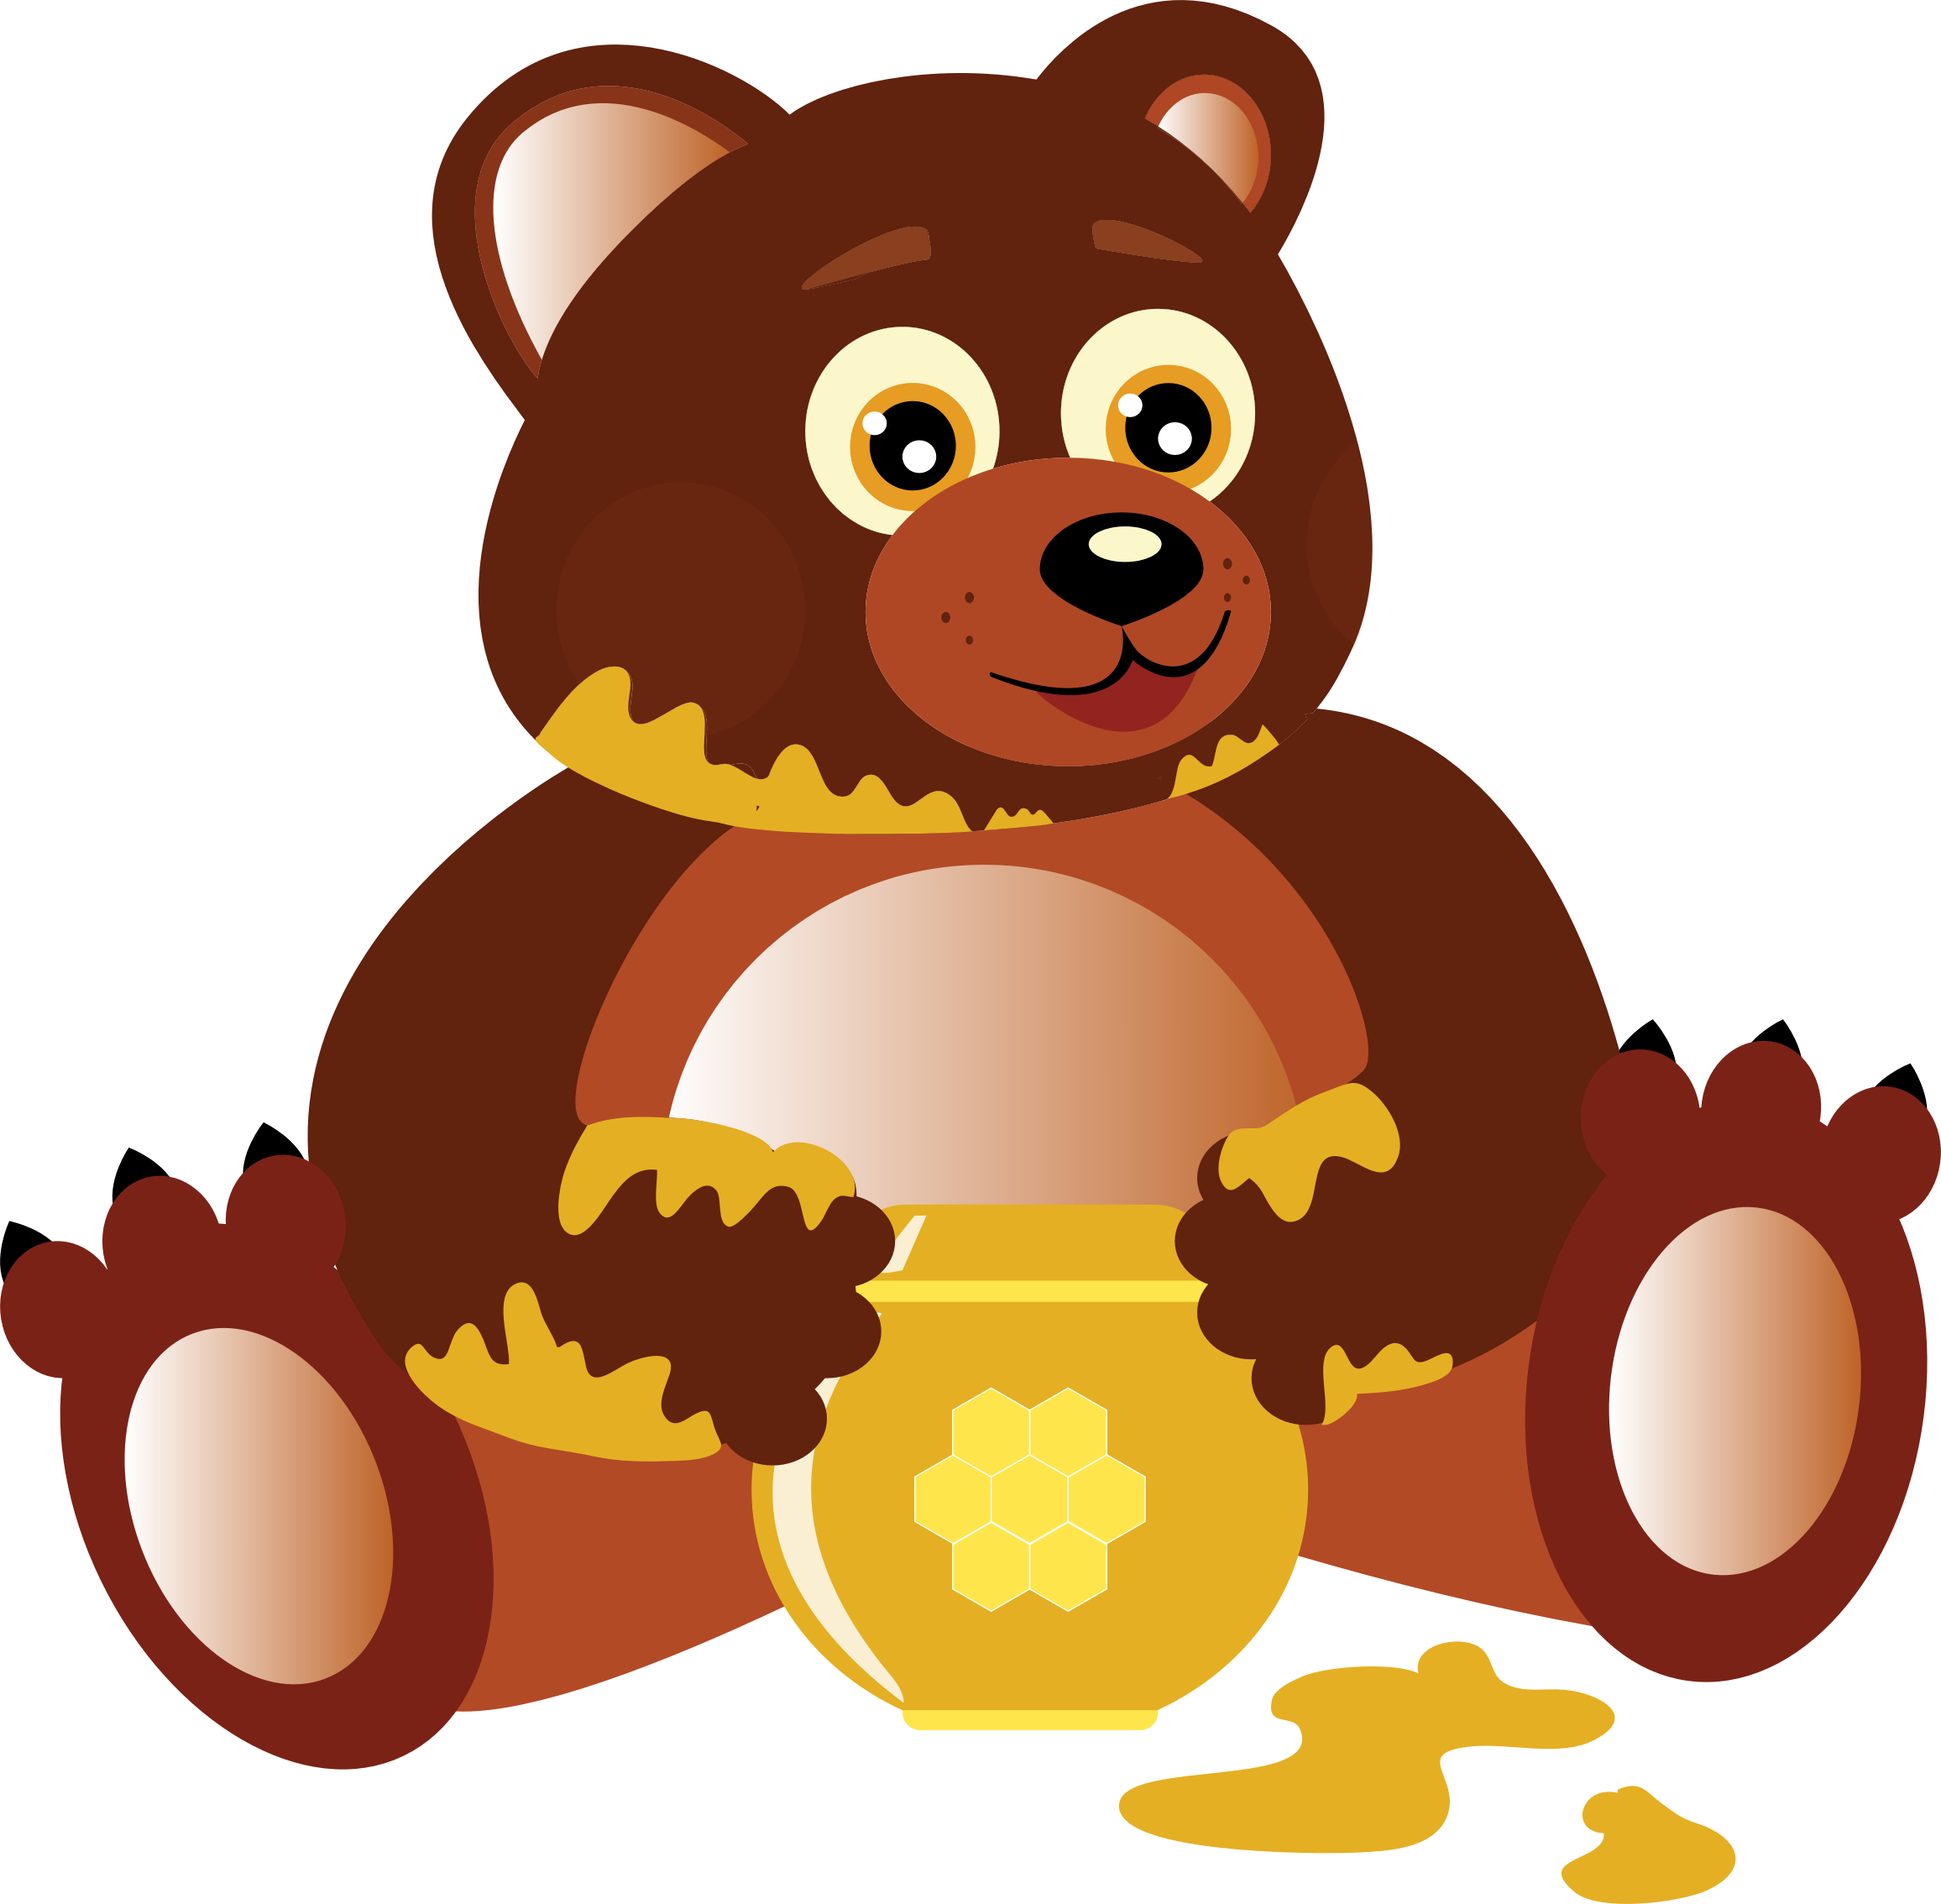 Honey bear png. Eating icons free and